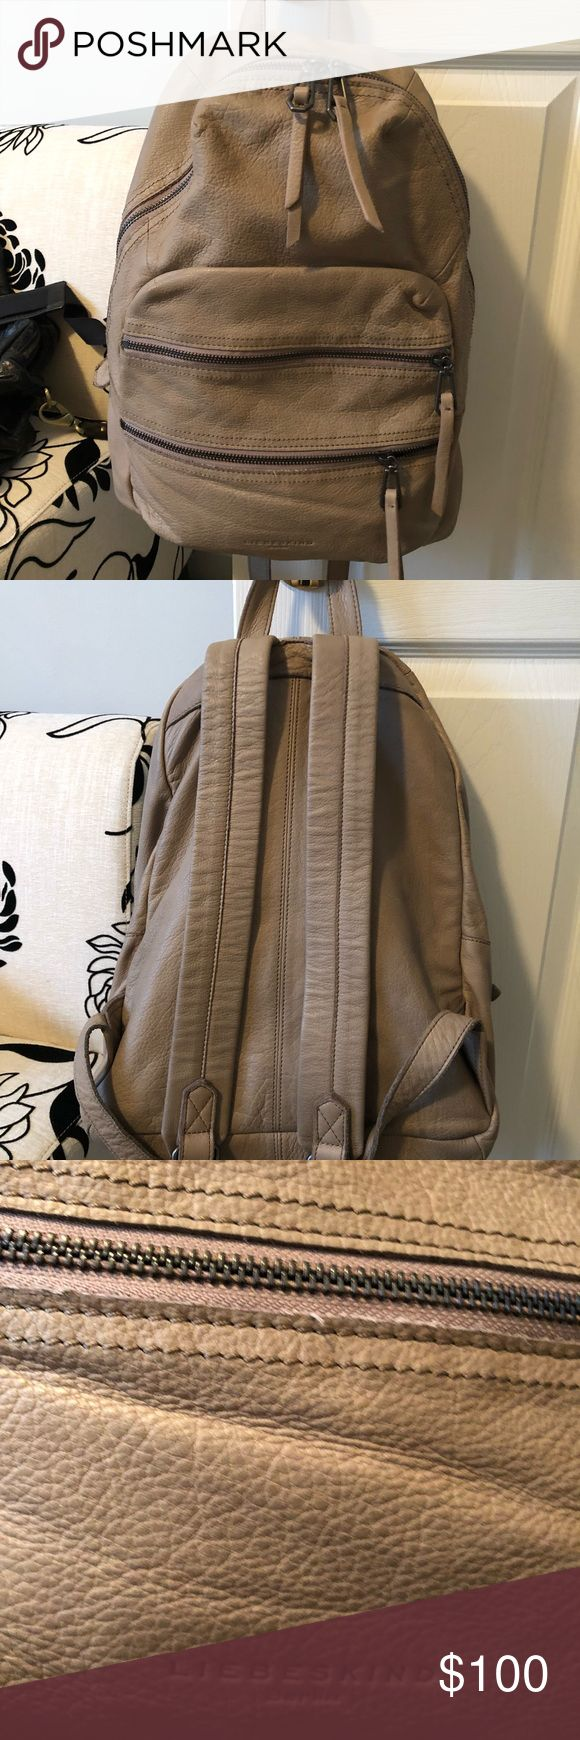 Liebeskind unisex backpack Beige leather and lined backpack with three zippered opening and pockets inside.  Has an iPad or tablet pocket too.  Great for traveling but only used a few times. Smoke and pet free!  Dimensions are 17 x 14 x 6. Liebeskind Bags Backpacks